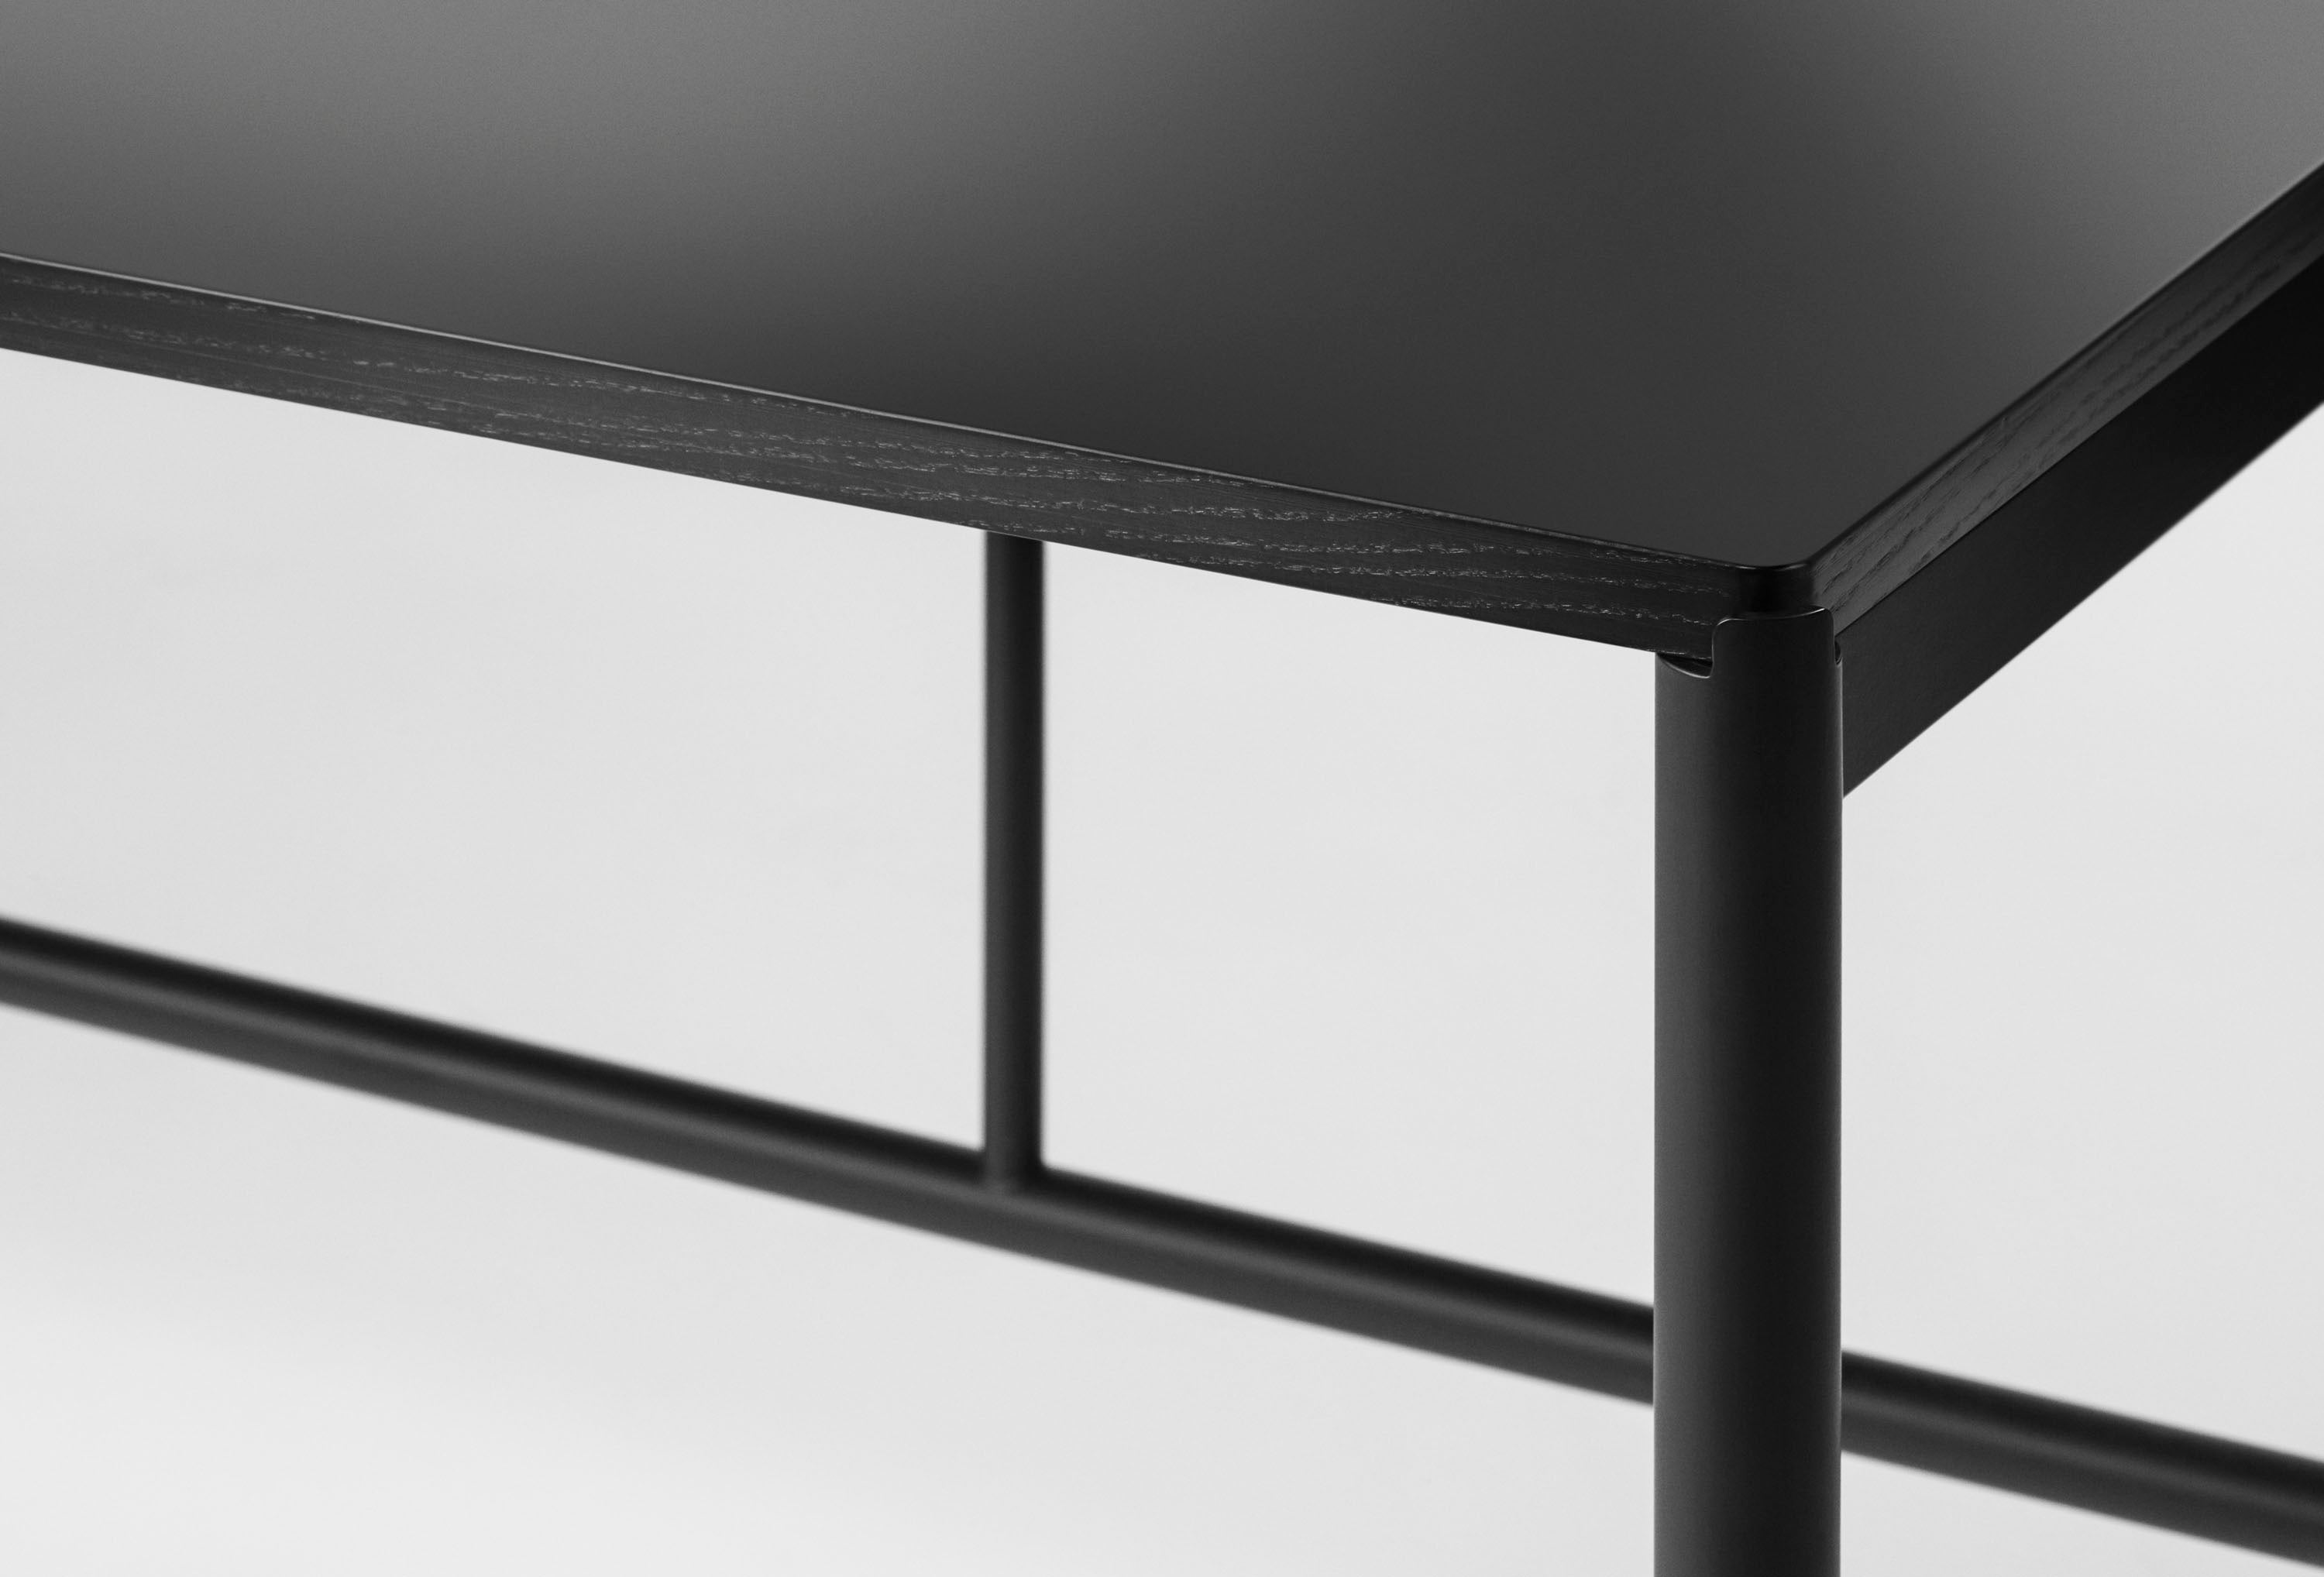 Mies Conference Table C1 Black/Black Nanotech Laminate fra MILLION